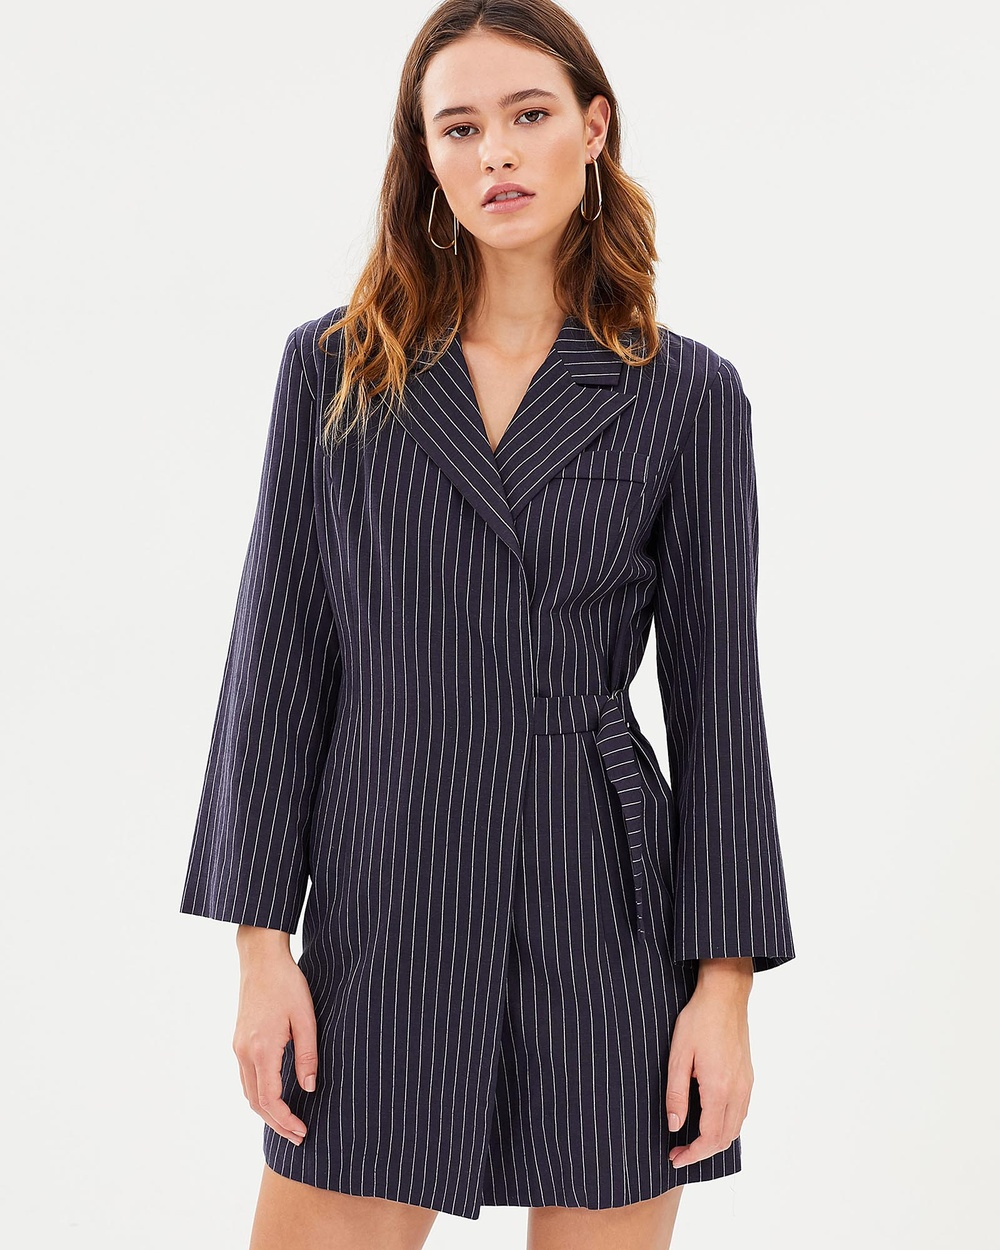 Third Form Line Up Blazer Dress Dresses Navy Stripe Line Up Blazer Dress